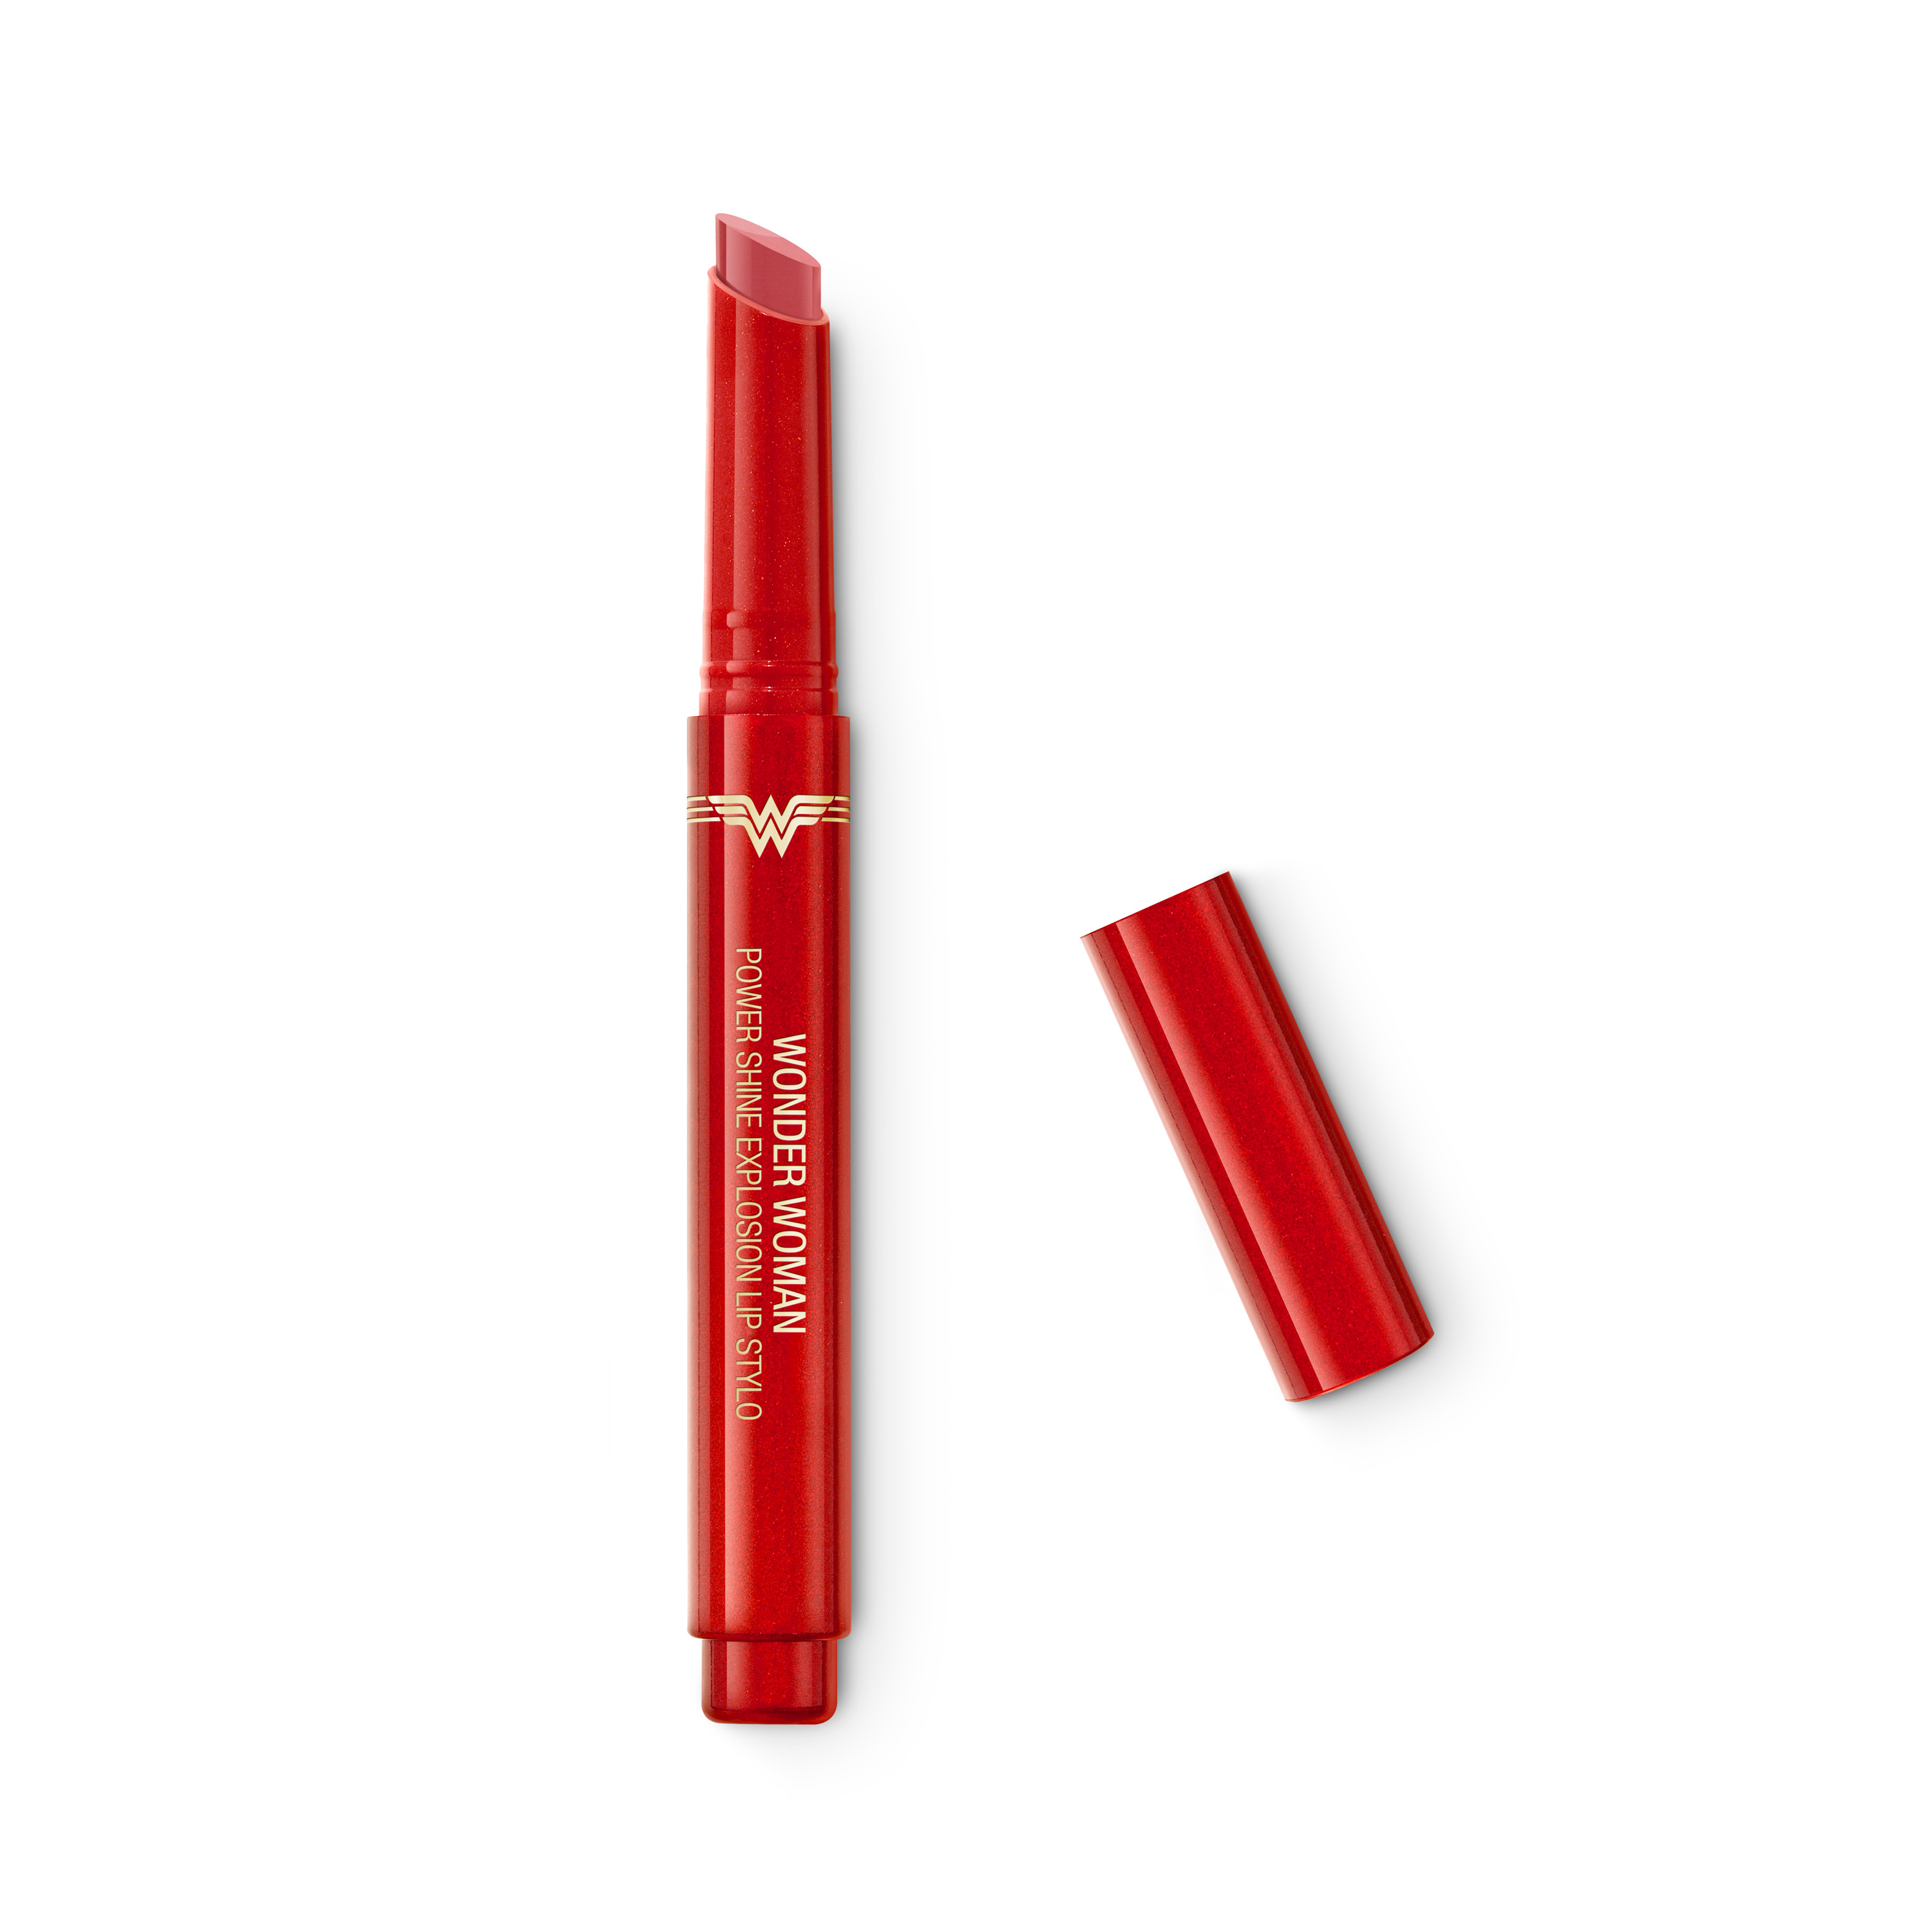 Wonder Woman Power Shine Explosion Lip Stylo